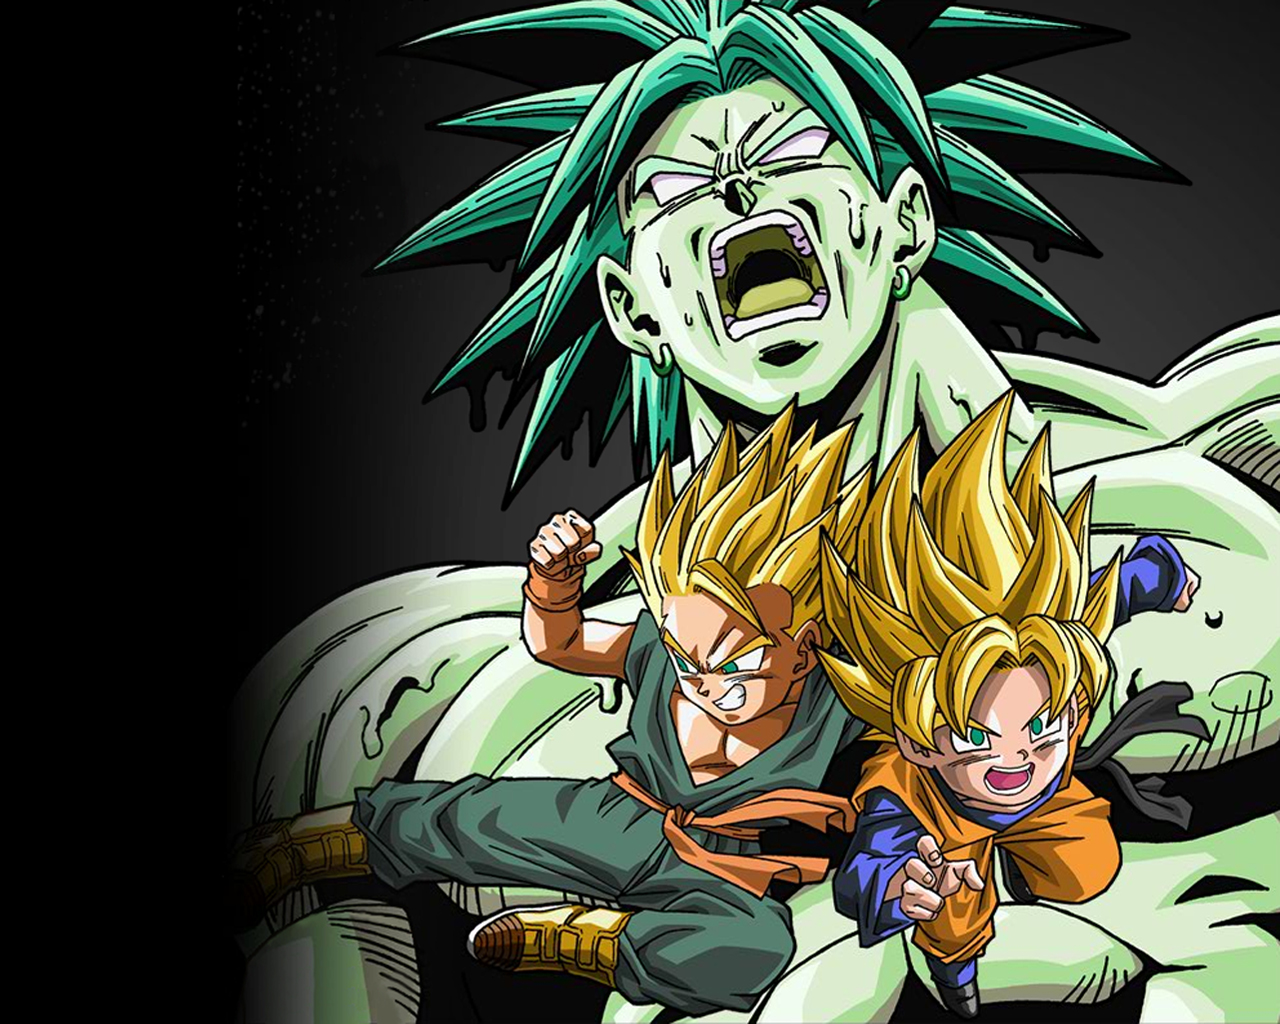 dbz rampage images broly goten and trunks hd wallpaper